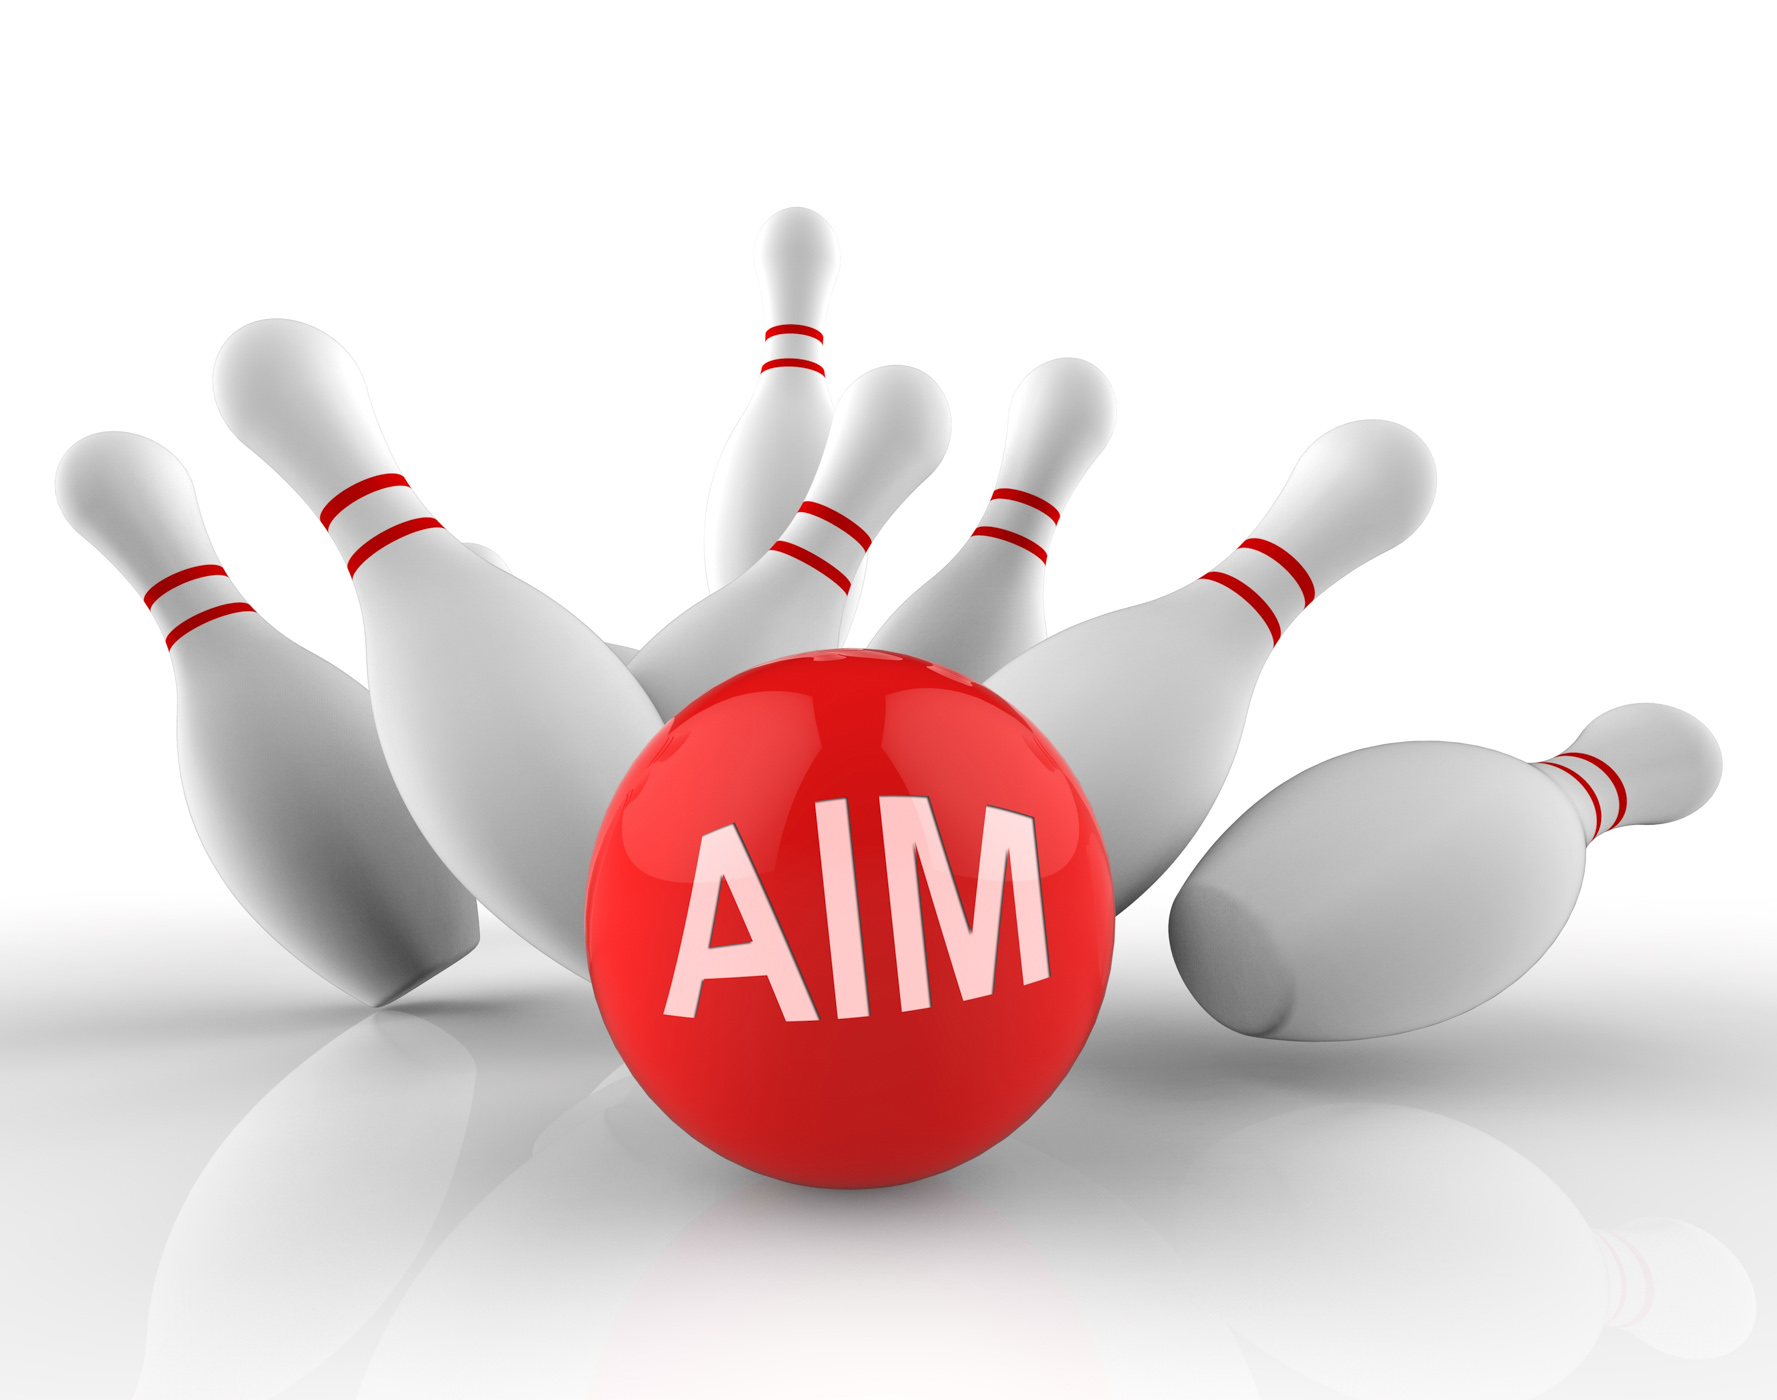 Bowling Aim Represents Aims Strike 3d Rendering, 3drendering, Activity, Aim, Aiming, HQ Photo